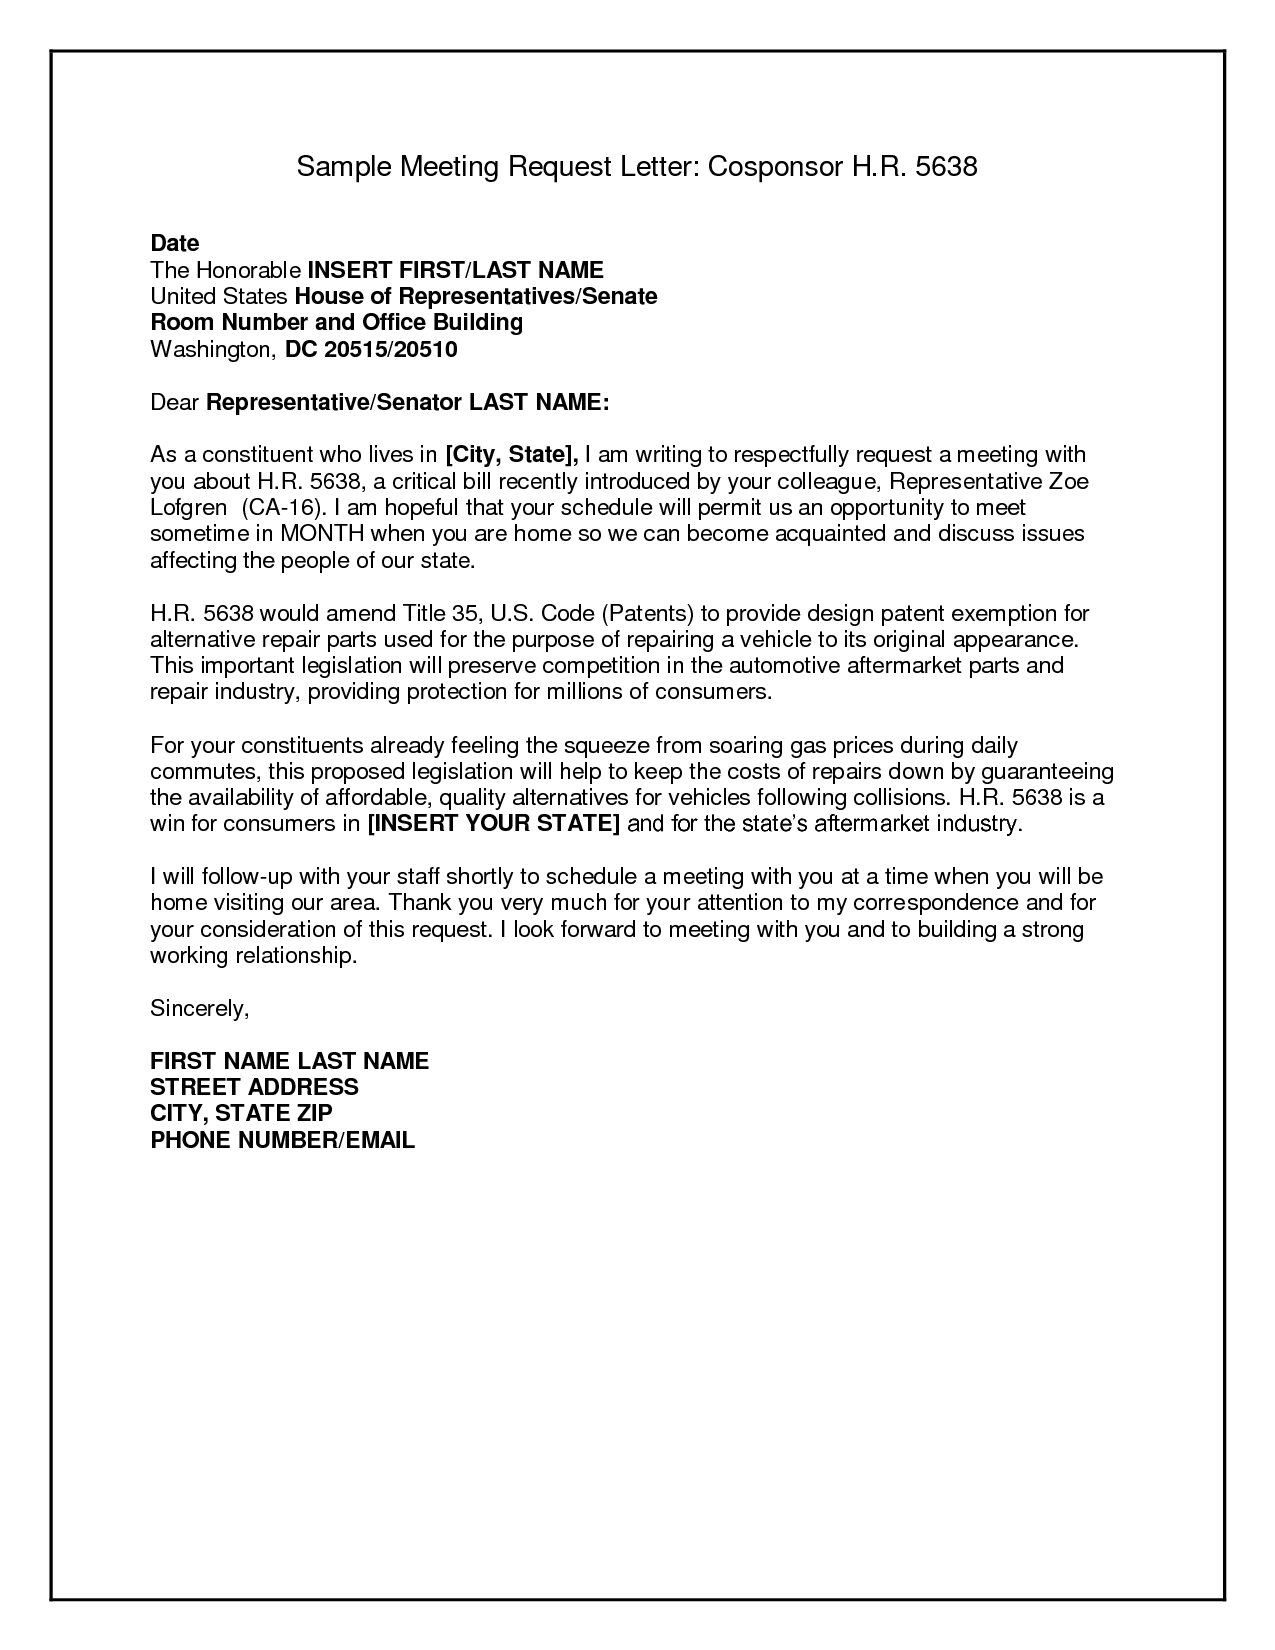 Letter Sample Business Format Request Meeting Letters Letterhead